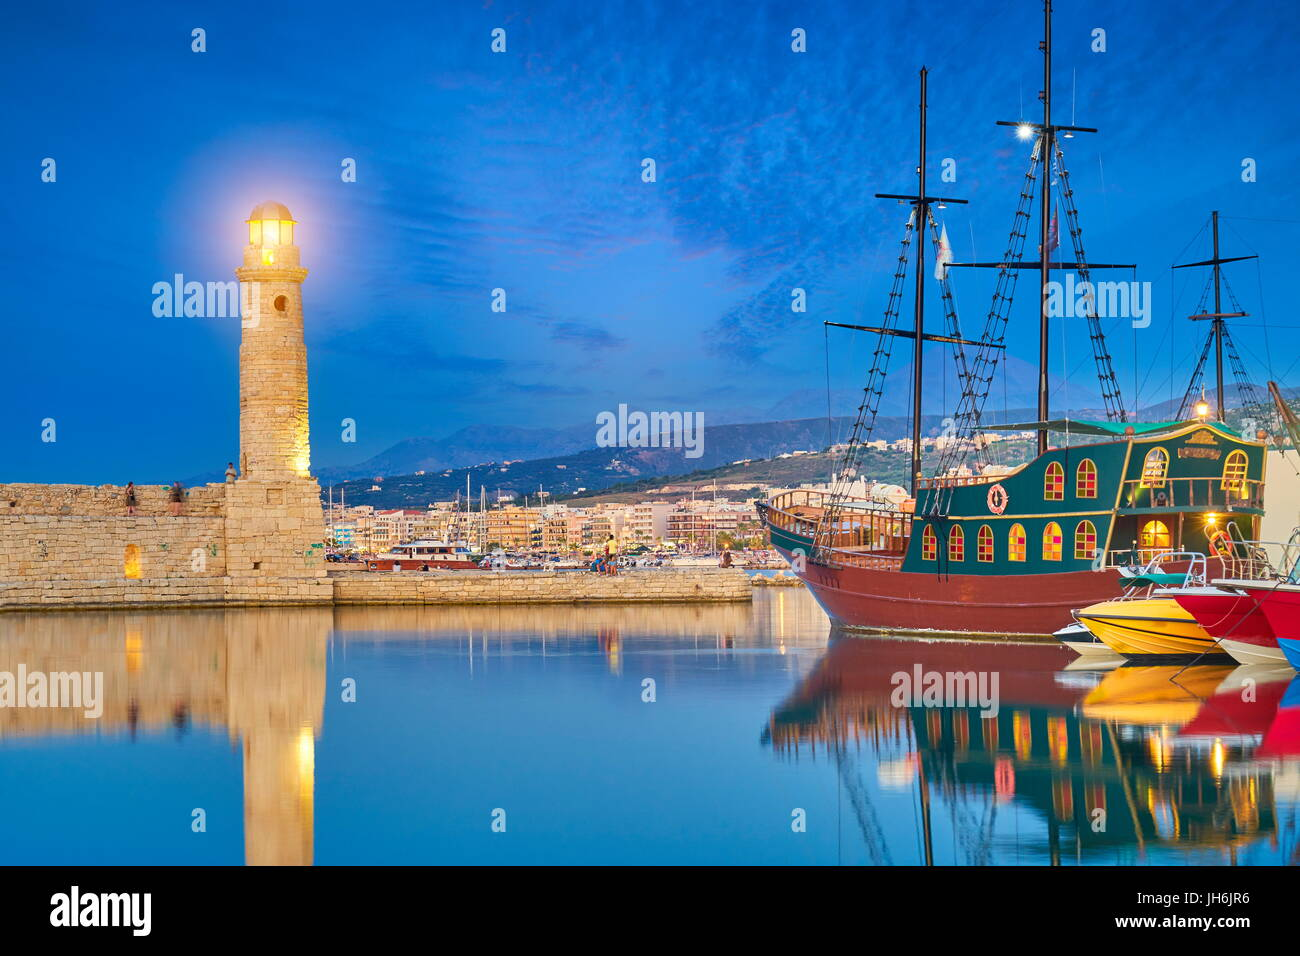 Lighthouse at Old Venetian Port, Rethymno, Crete Island, Greece - Stock Image